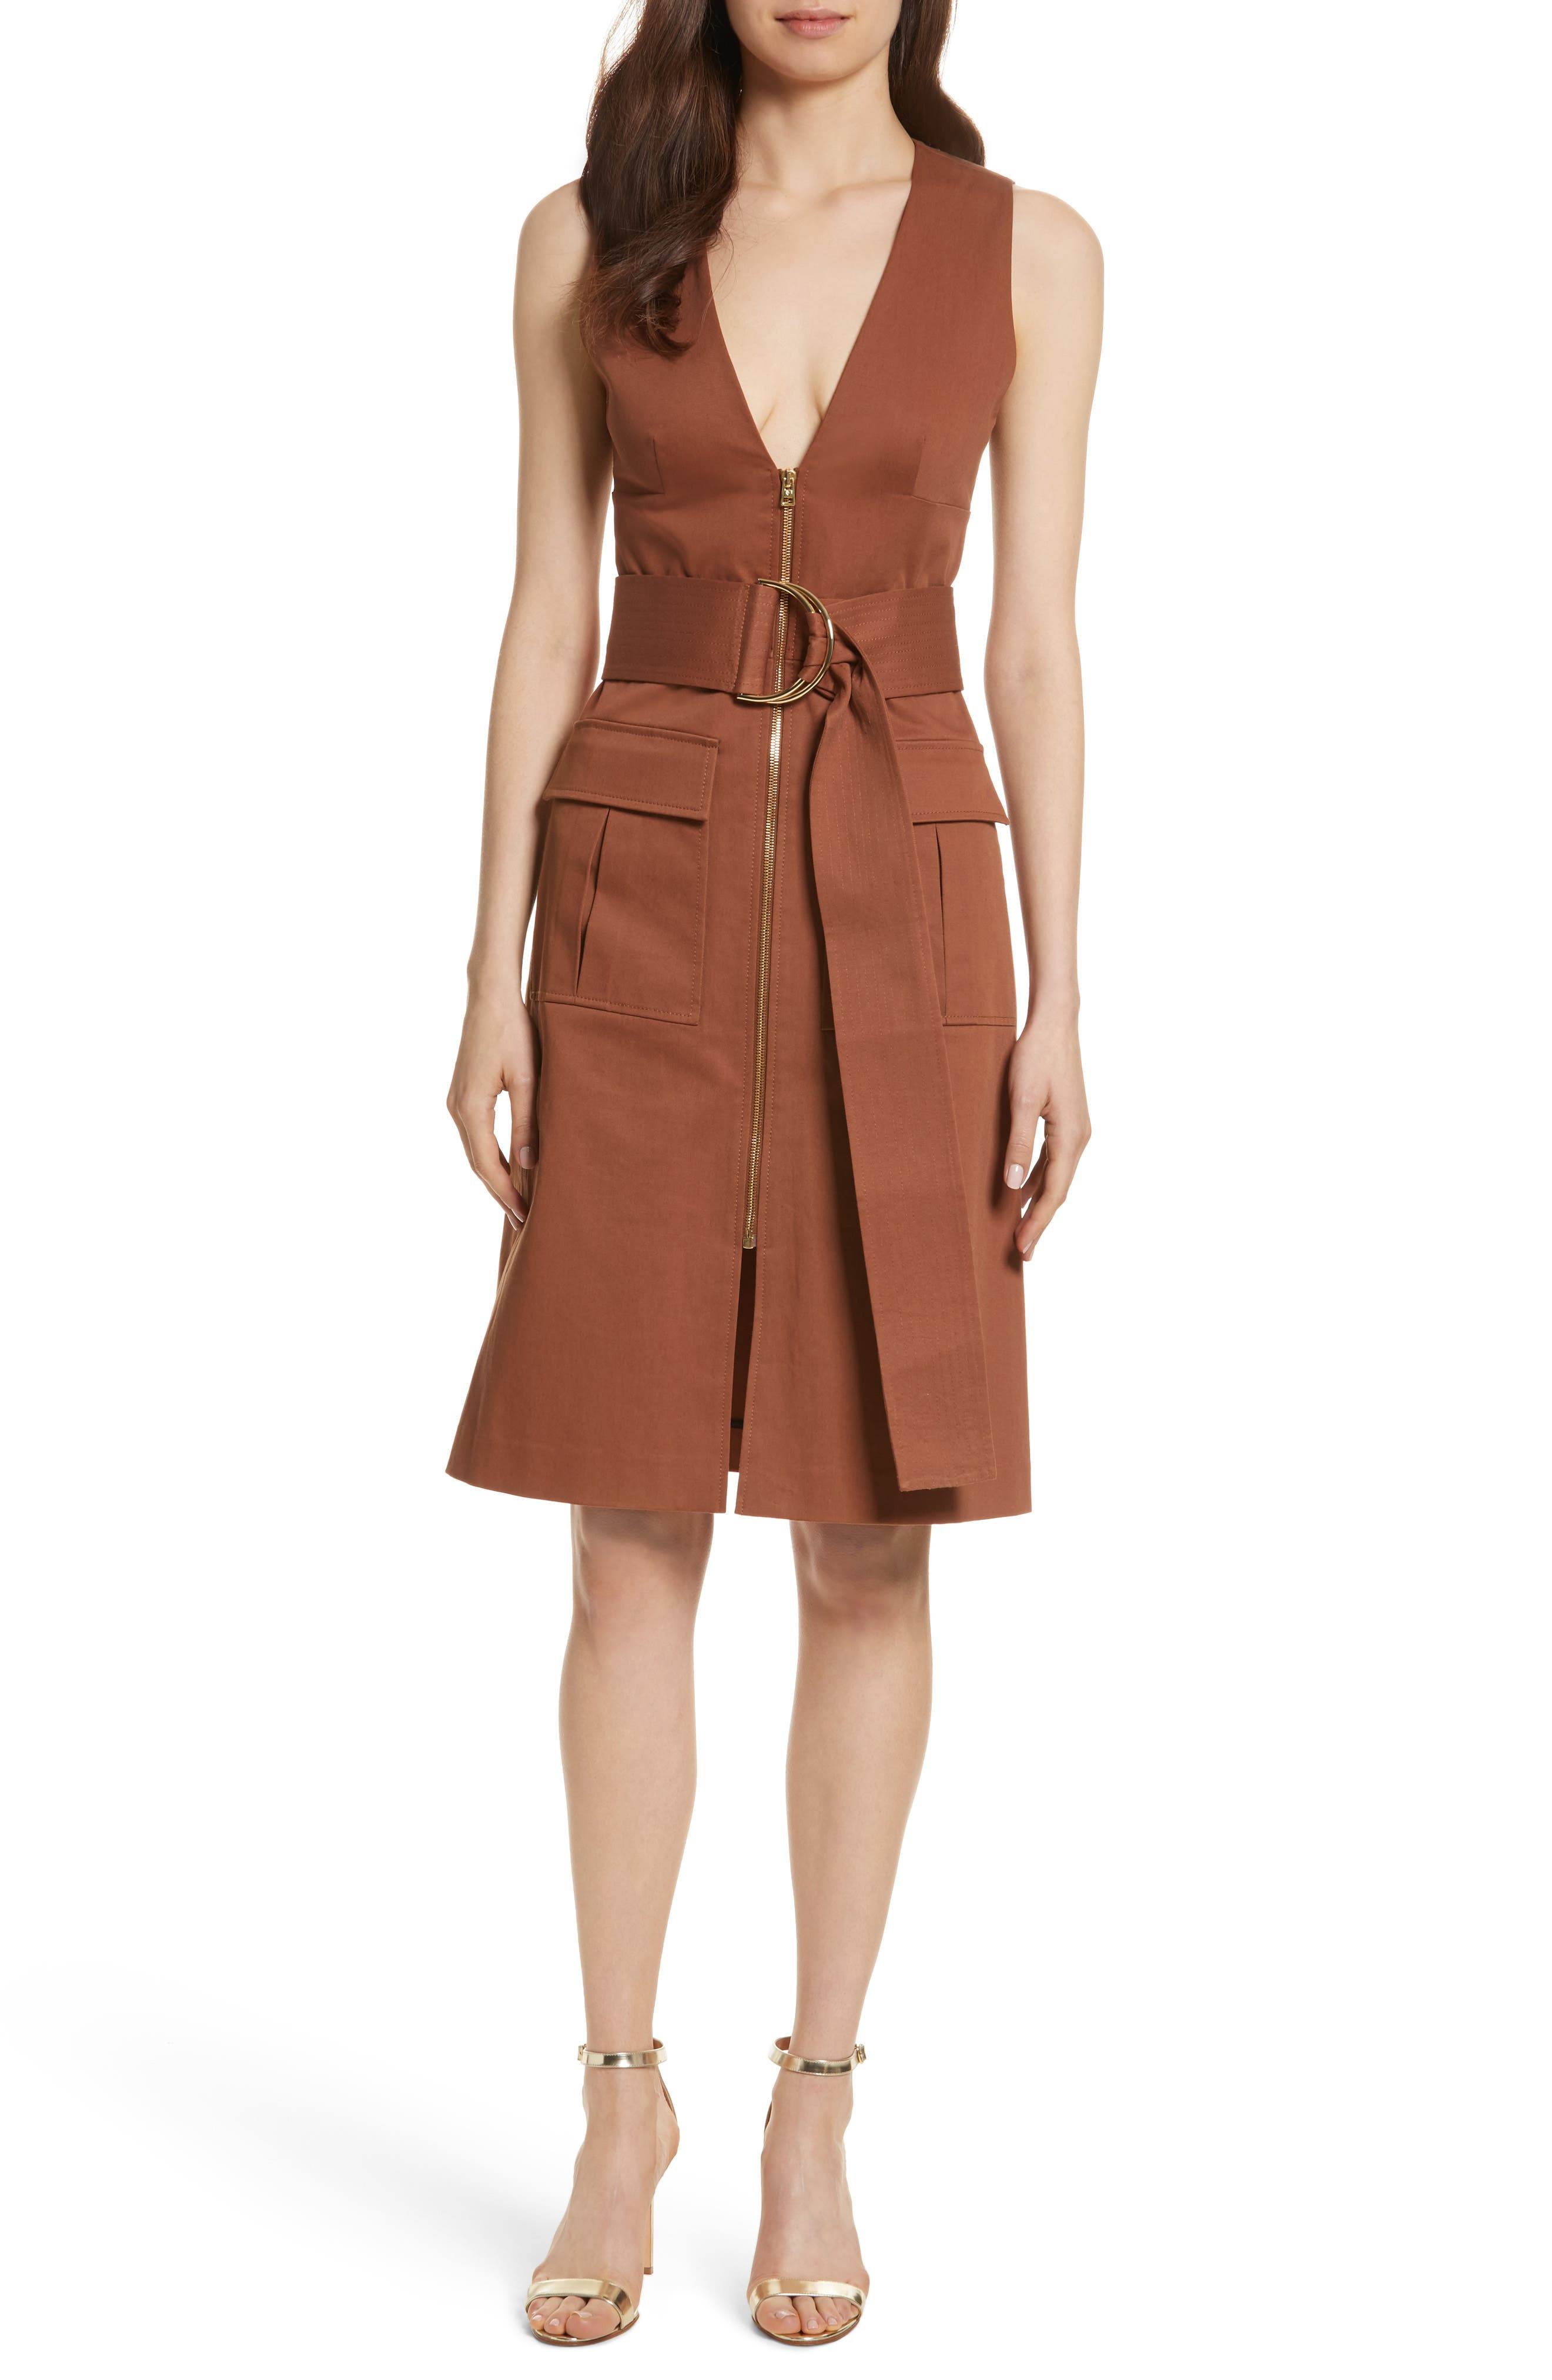 Diane von Furstenberg Zip Front Dress,                             Main thumbnail 1, color,                             203